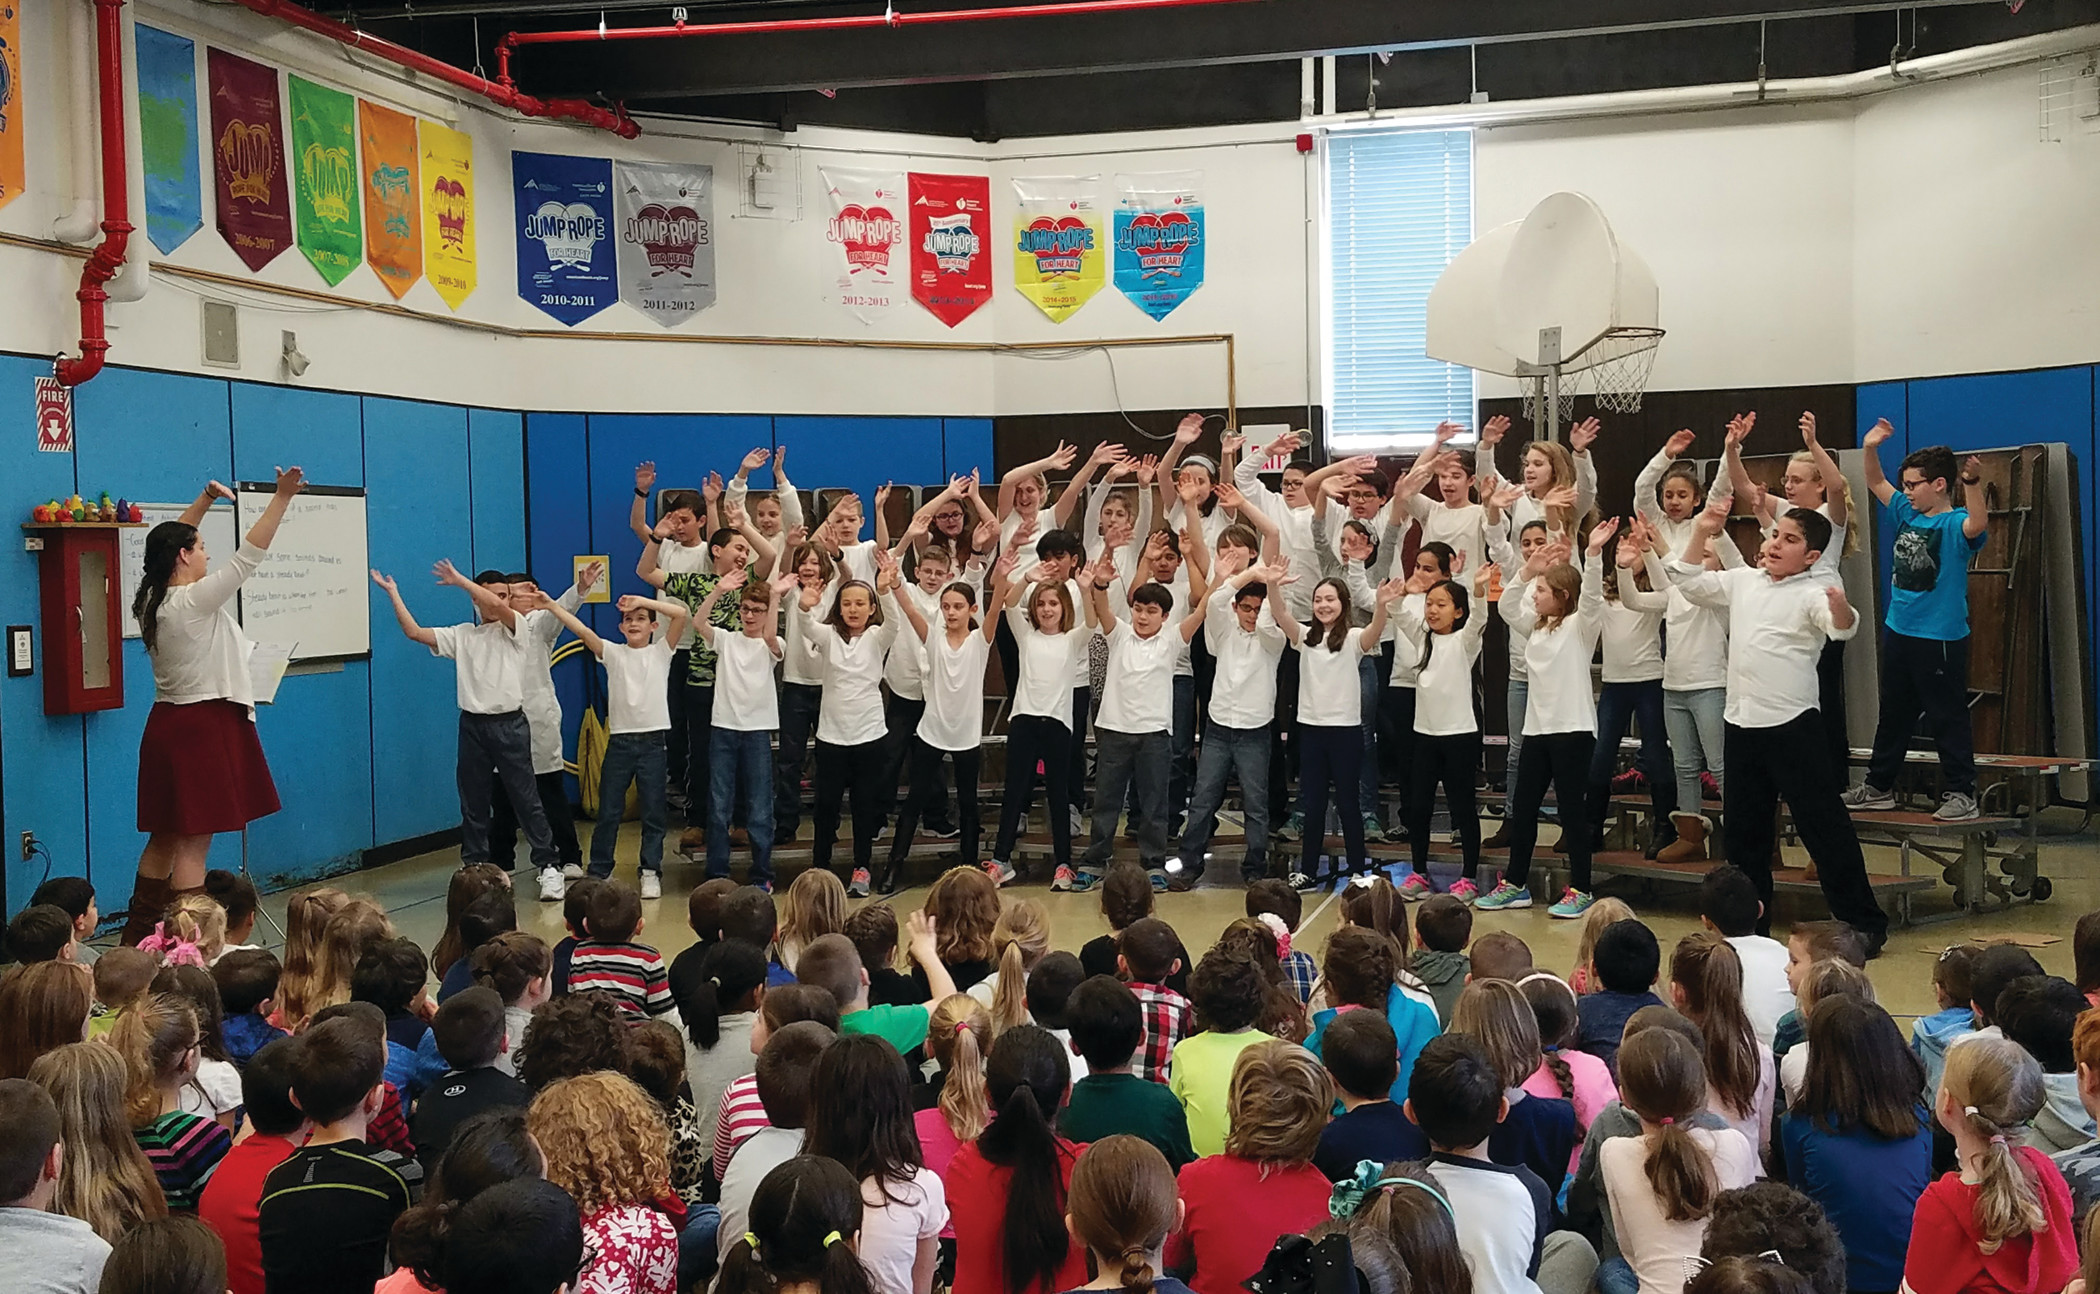 SCIENCE ROCKS: The fifth-graders were the first to perform their musical, hosting an audience of their peers and spotlighting different topics and scientists.